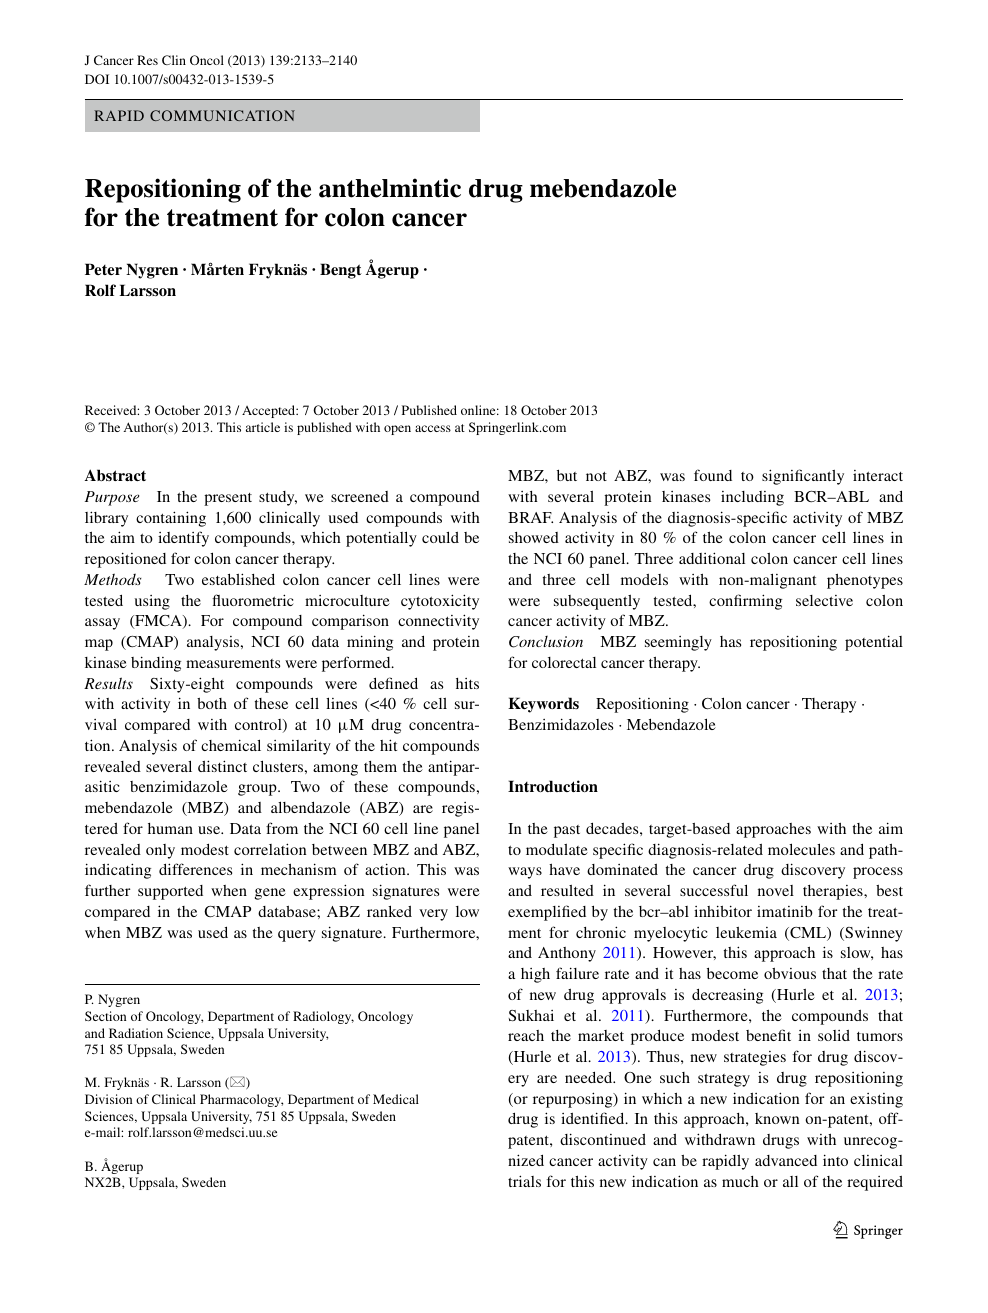 Repositioning Of The Anthelmintic Drug Mebendazole For The Treatment For Colon Cancer Topic Of Research Paper In Chemical Sciences Download Scholarly Article Pdf And Read For Free On Cyberleninka Open Science